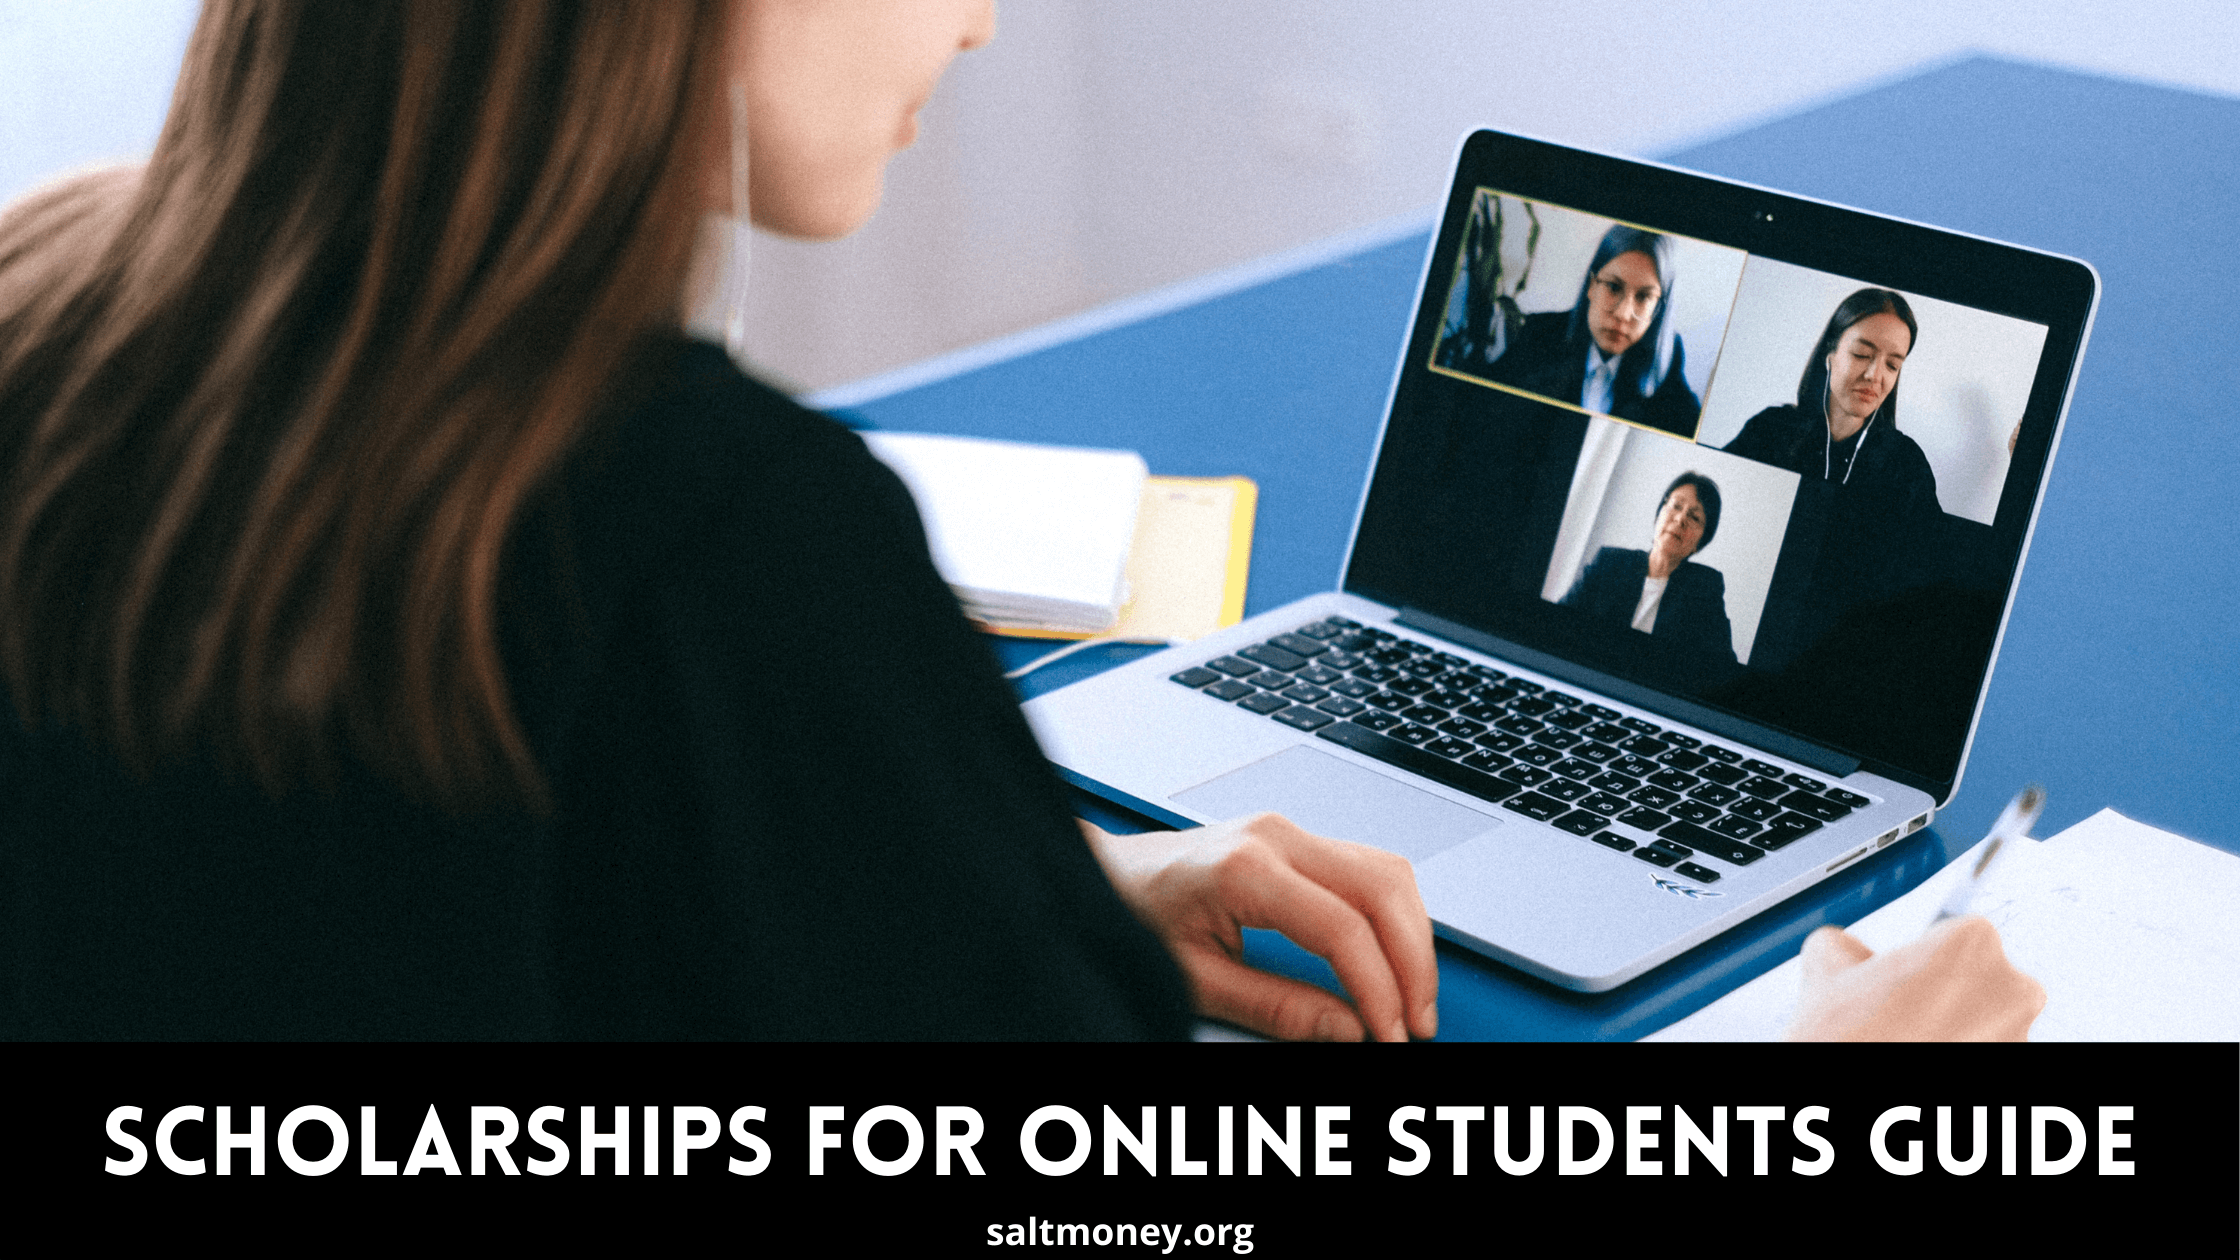 Scholarships For Online Students